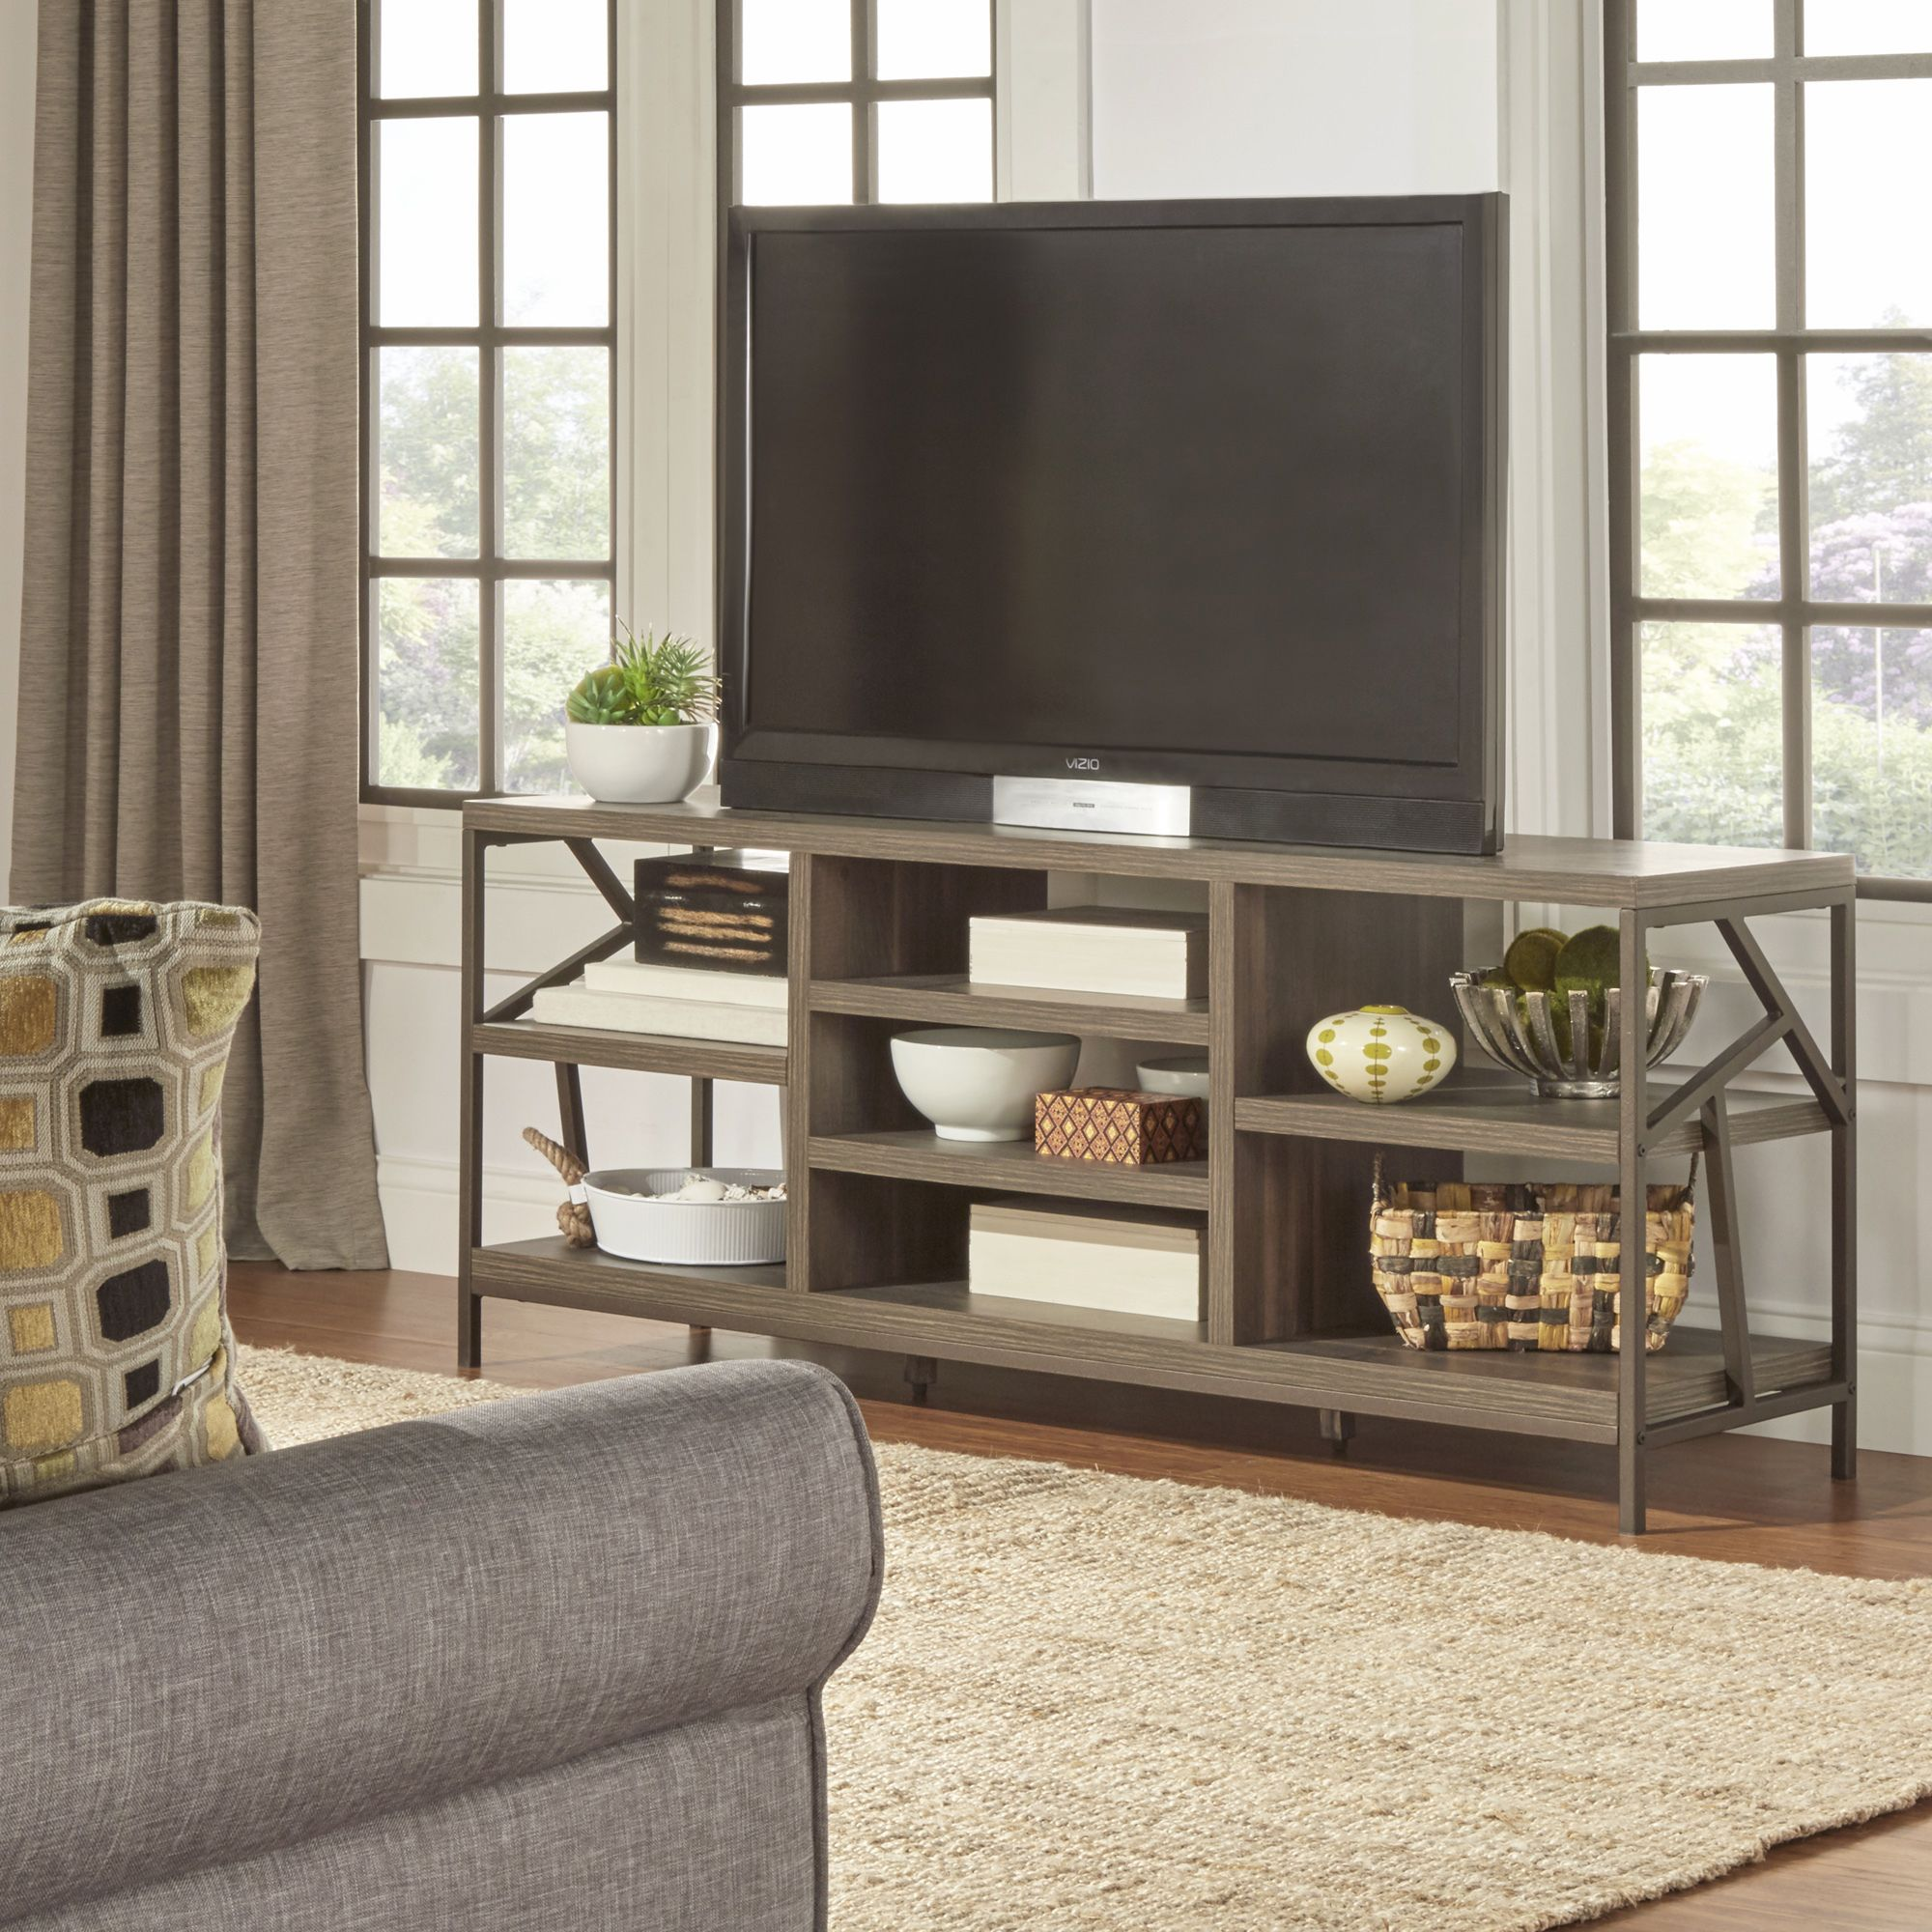 table wayfair clearance bed nightstands with bedside end night baskets nightstand tables bookshelf drawers maple and